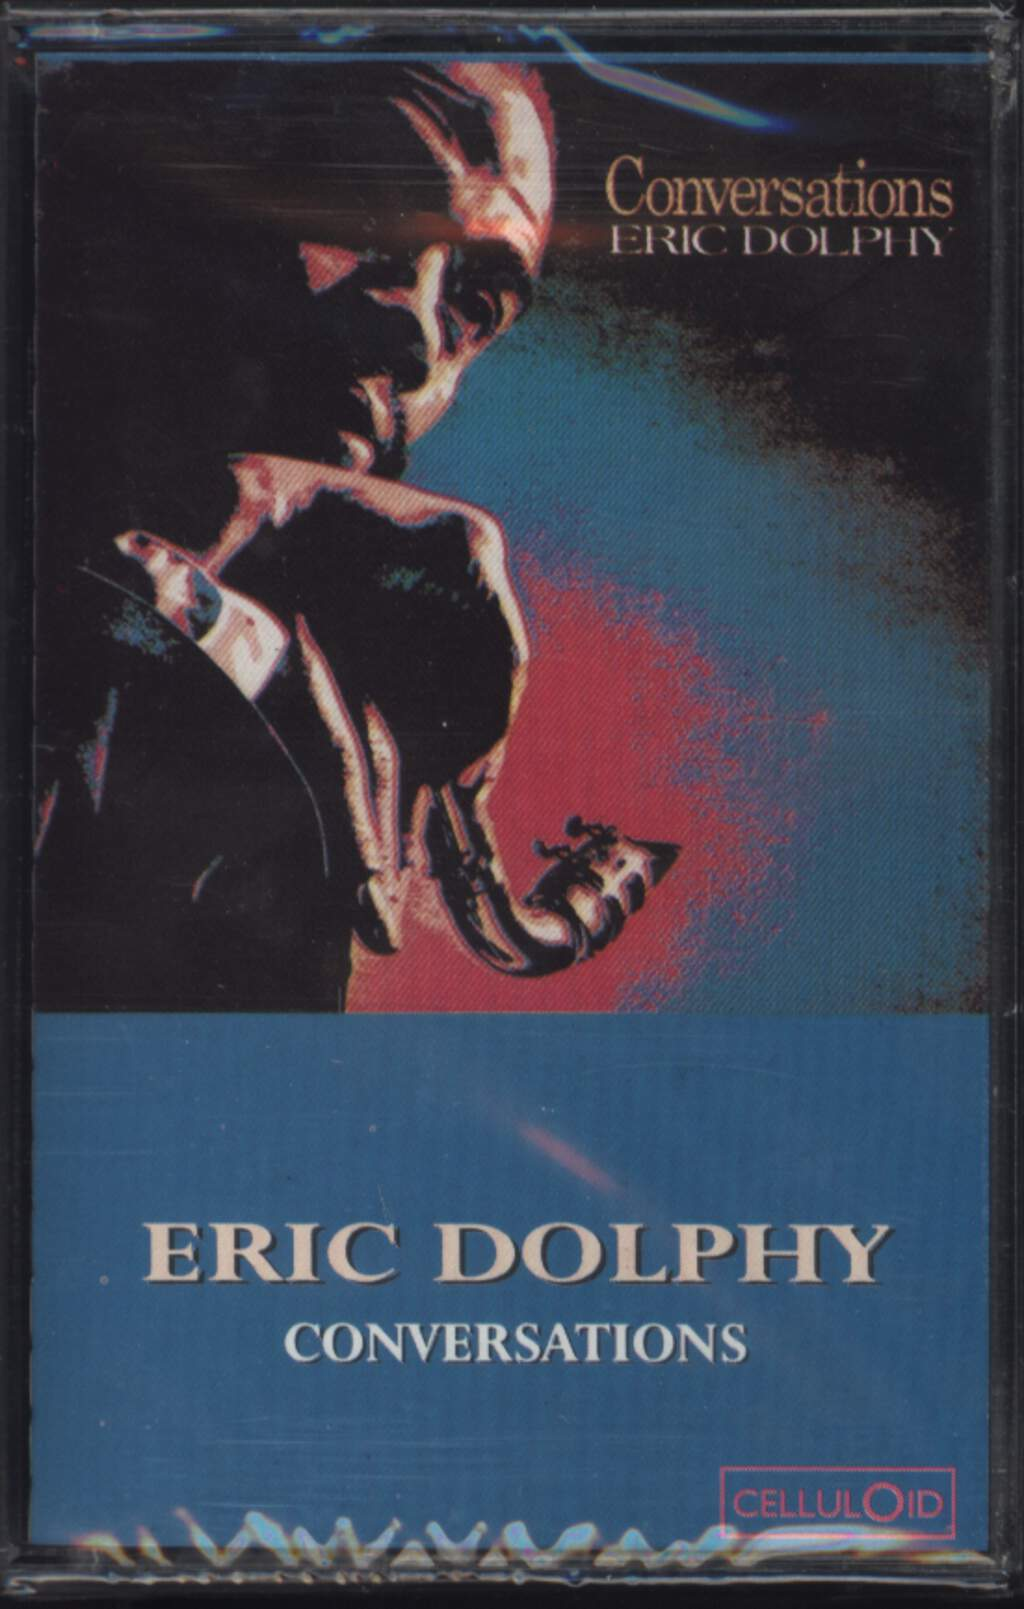 Eric Dolphy: Conversations, Compact Cassette